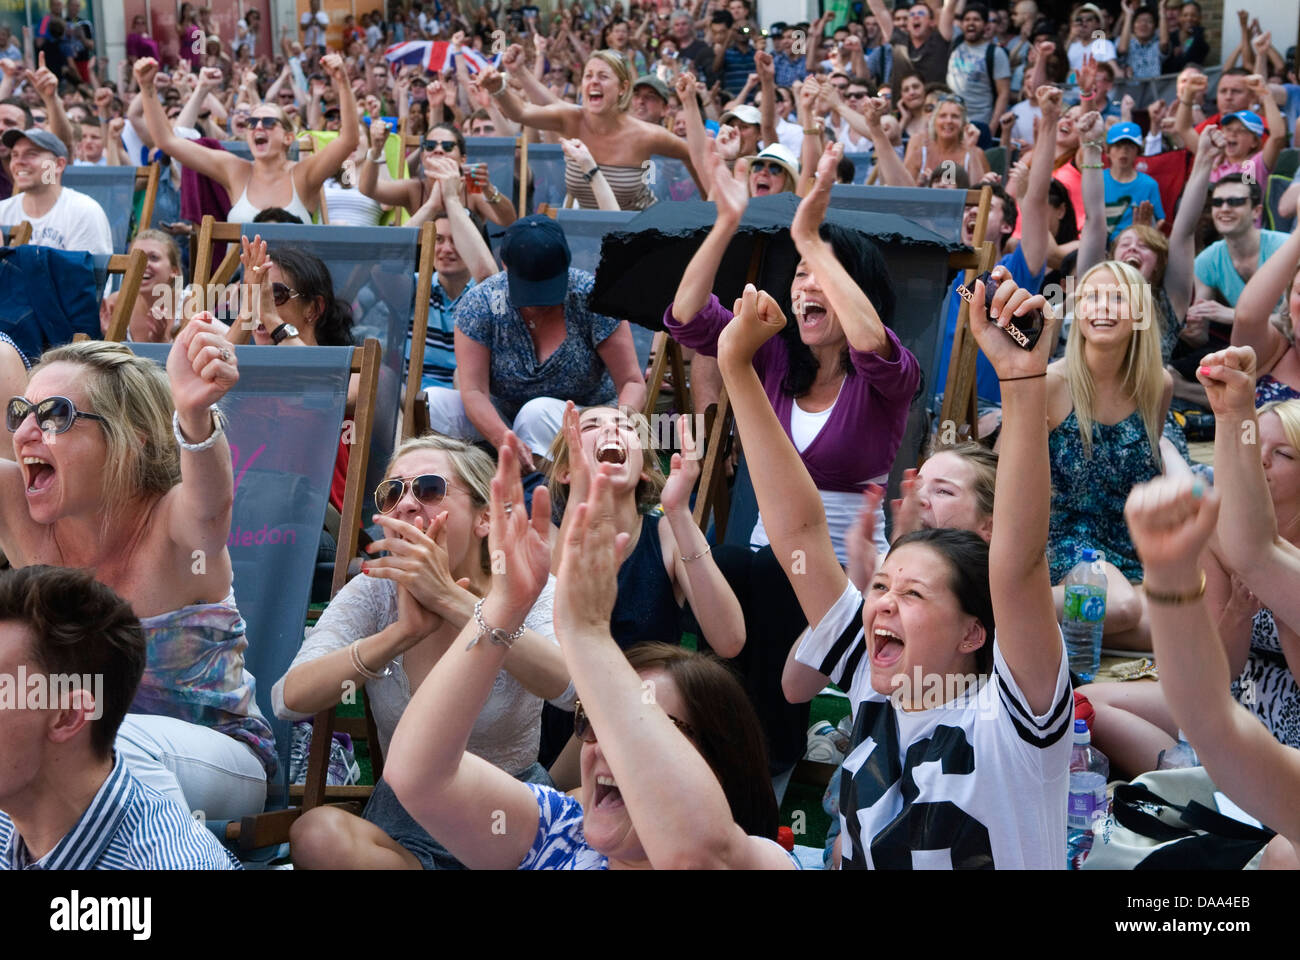 Watching sport  Cheering crowd of sports fans Wimbledon town center watching on TV screen UK HOMER SYKES - Stock Image